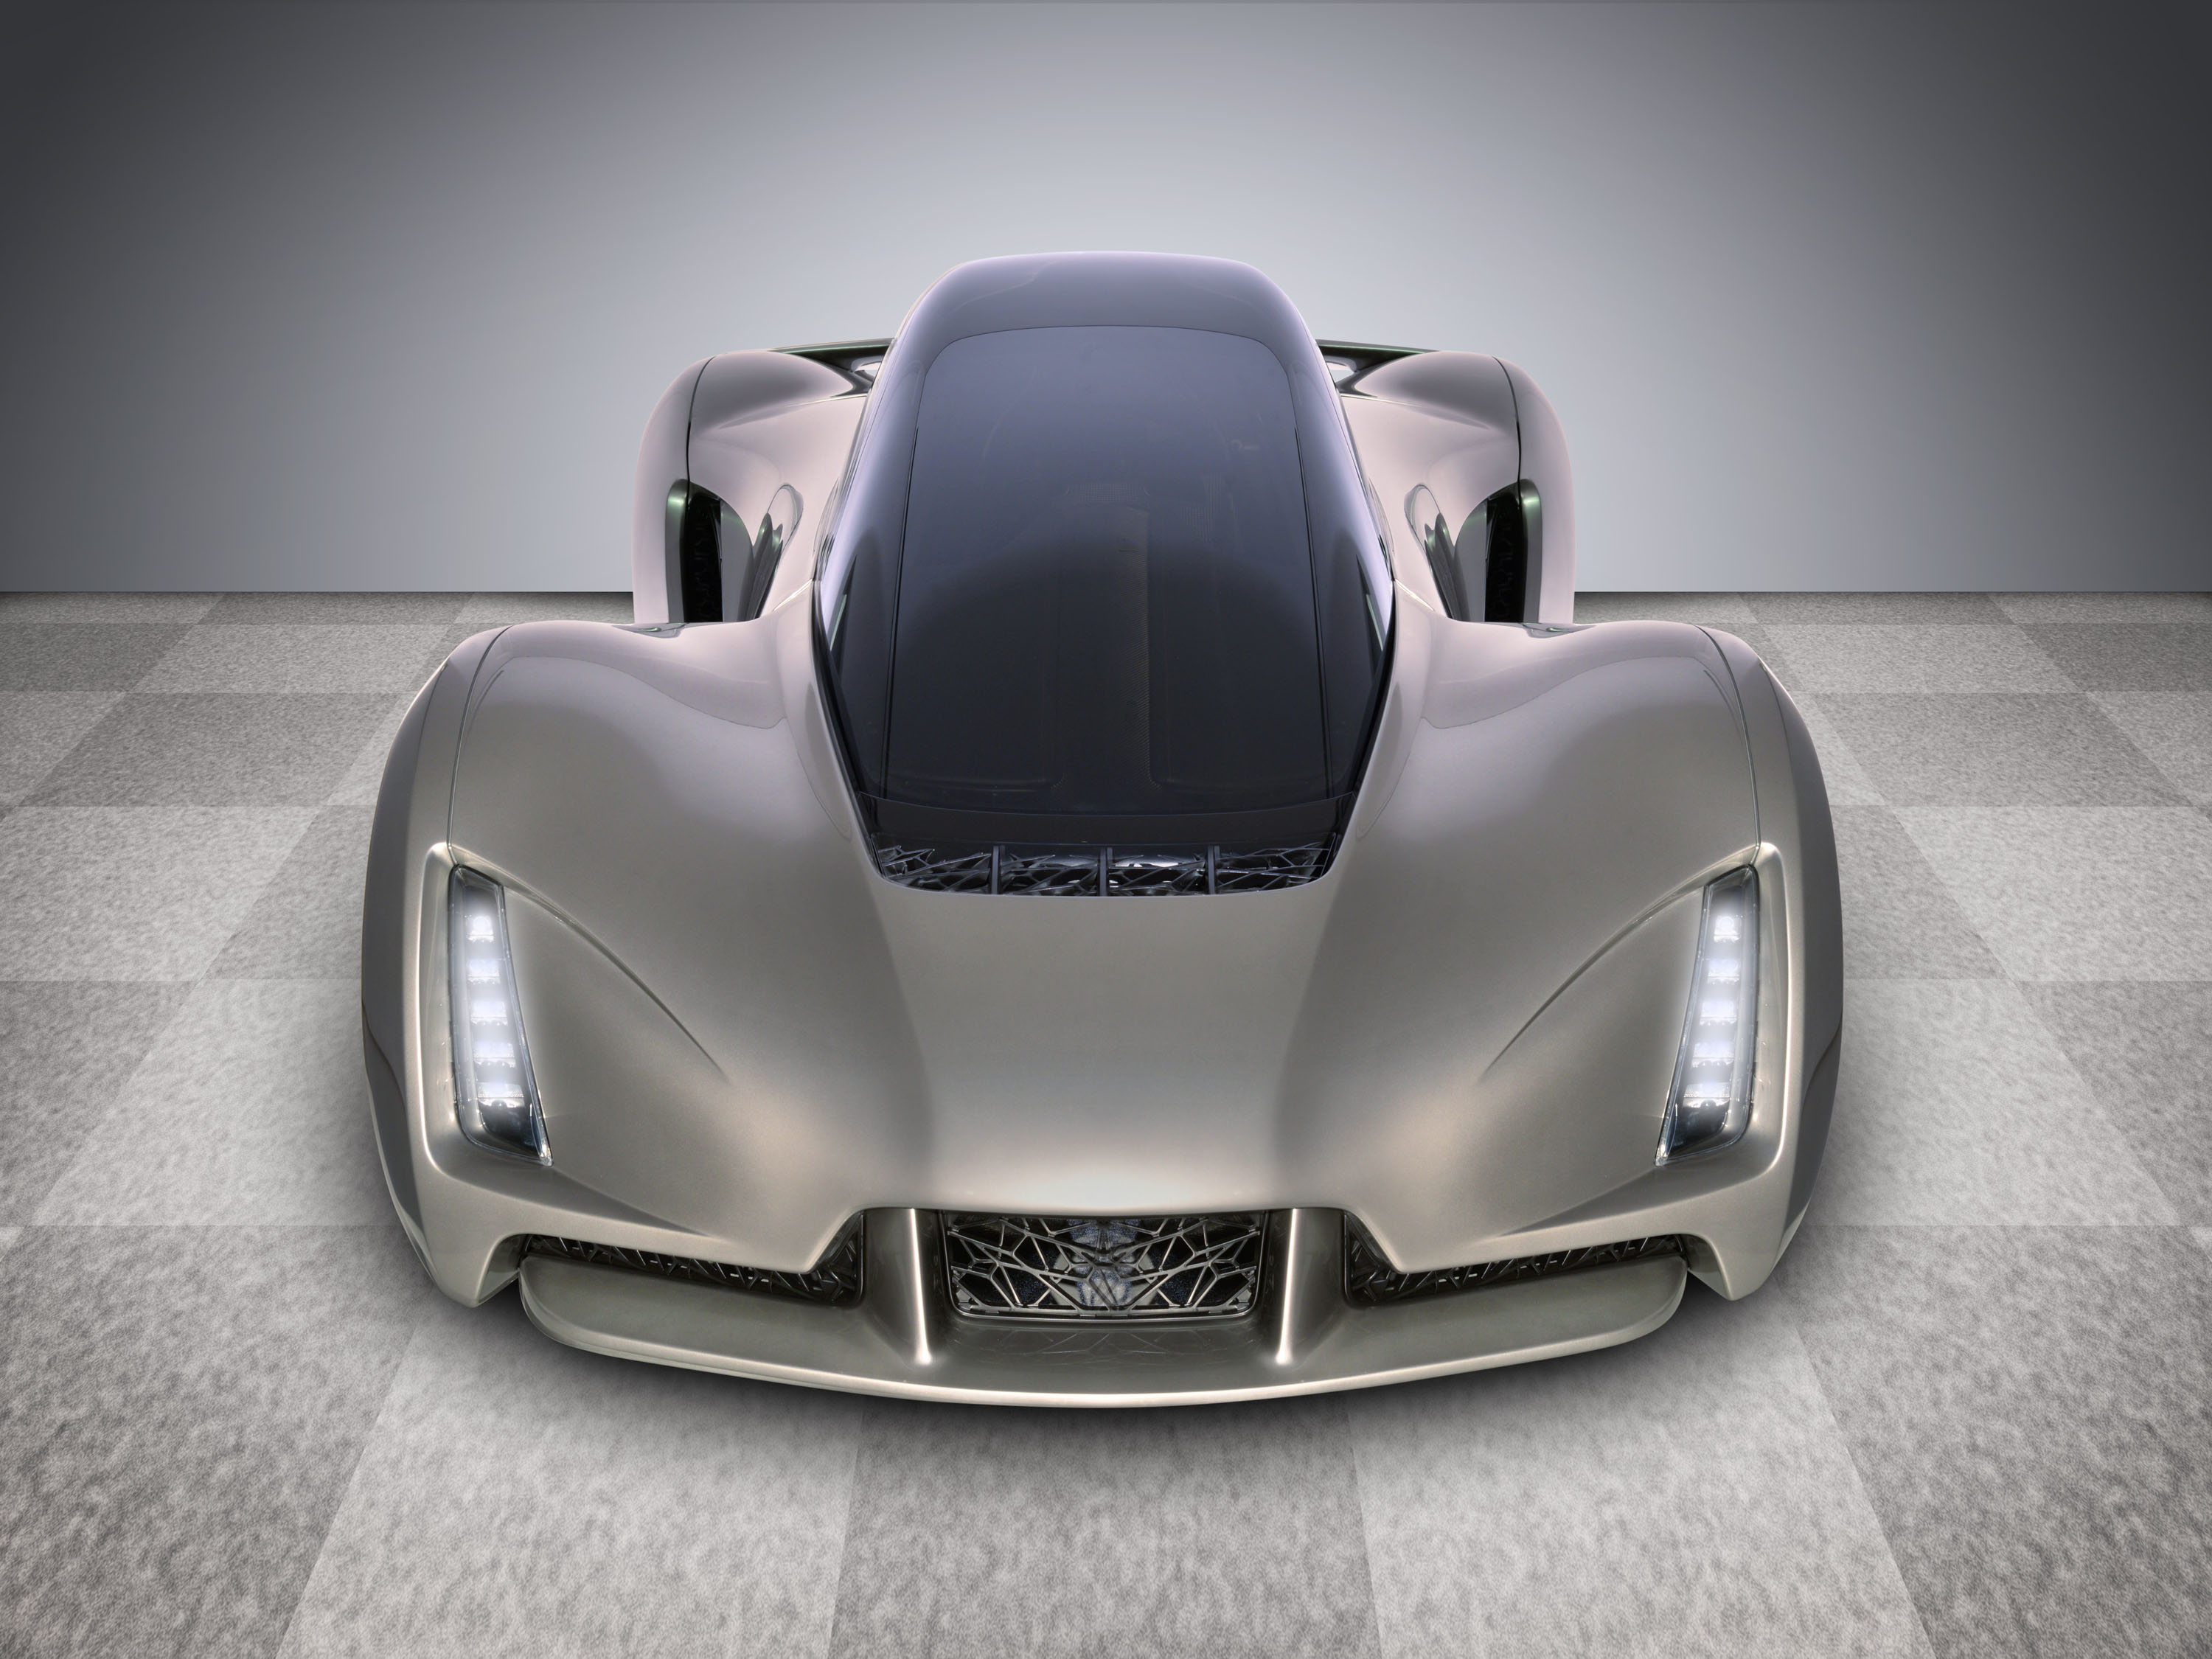 Automotive industry uses 3D printed car parts.